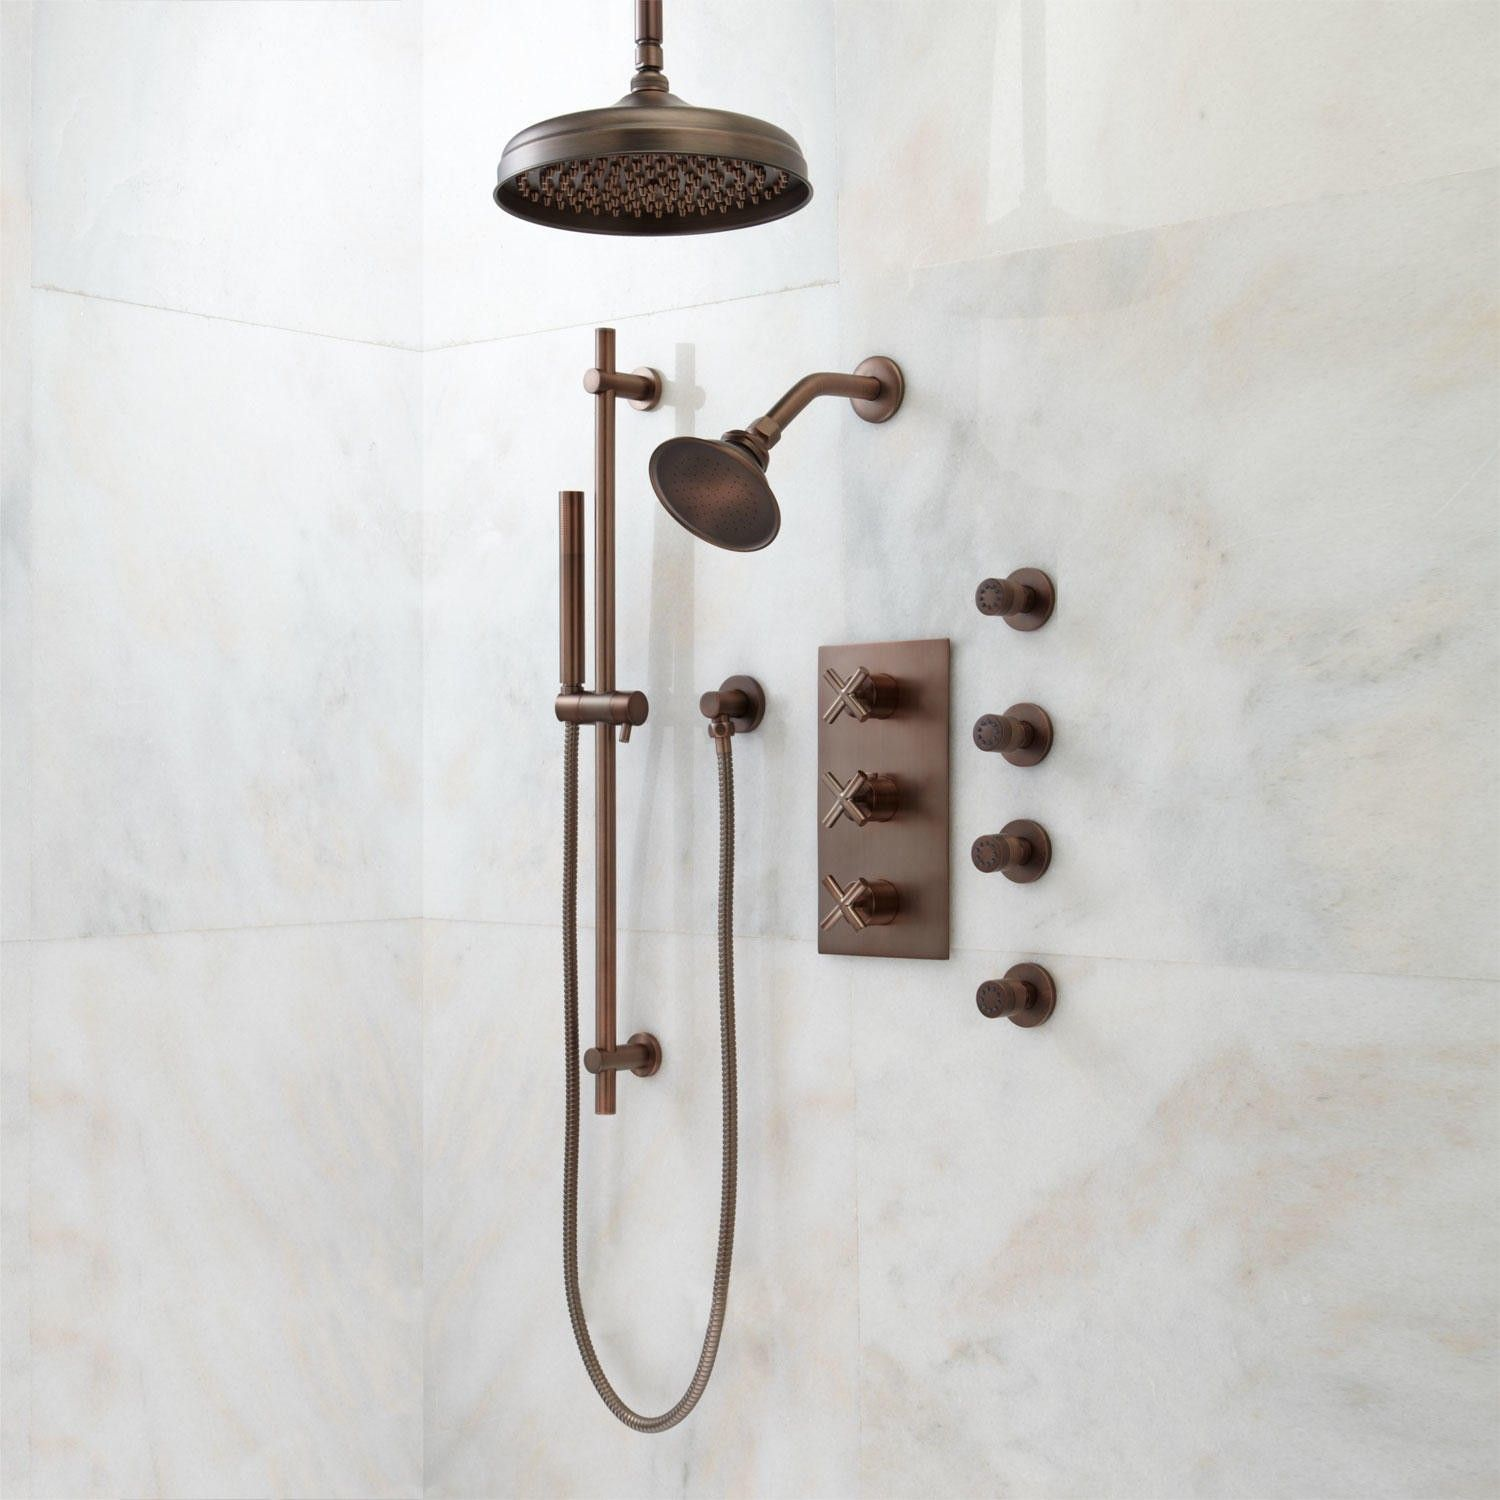 dual rain shower head with handheld. exira thermostatic shower system - dual heads, hand . rain head with handheld